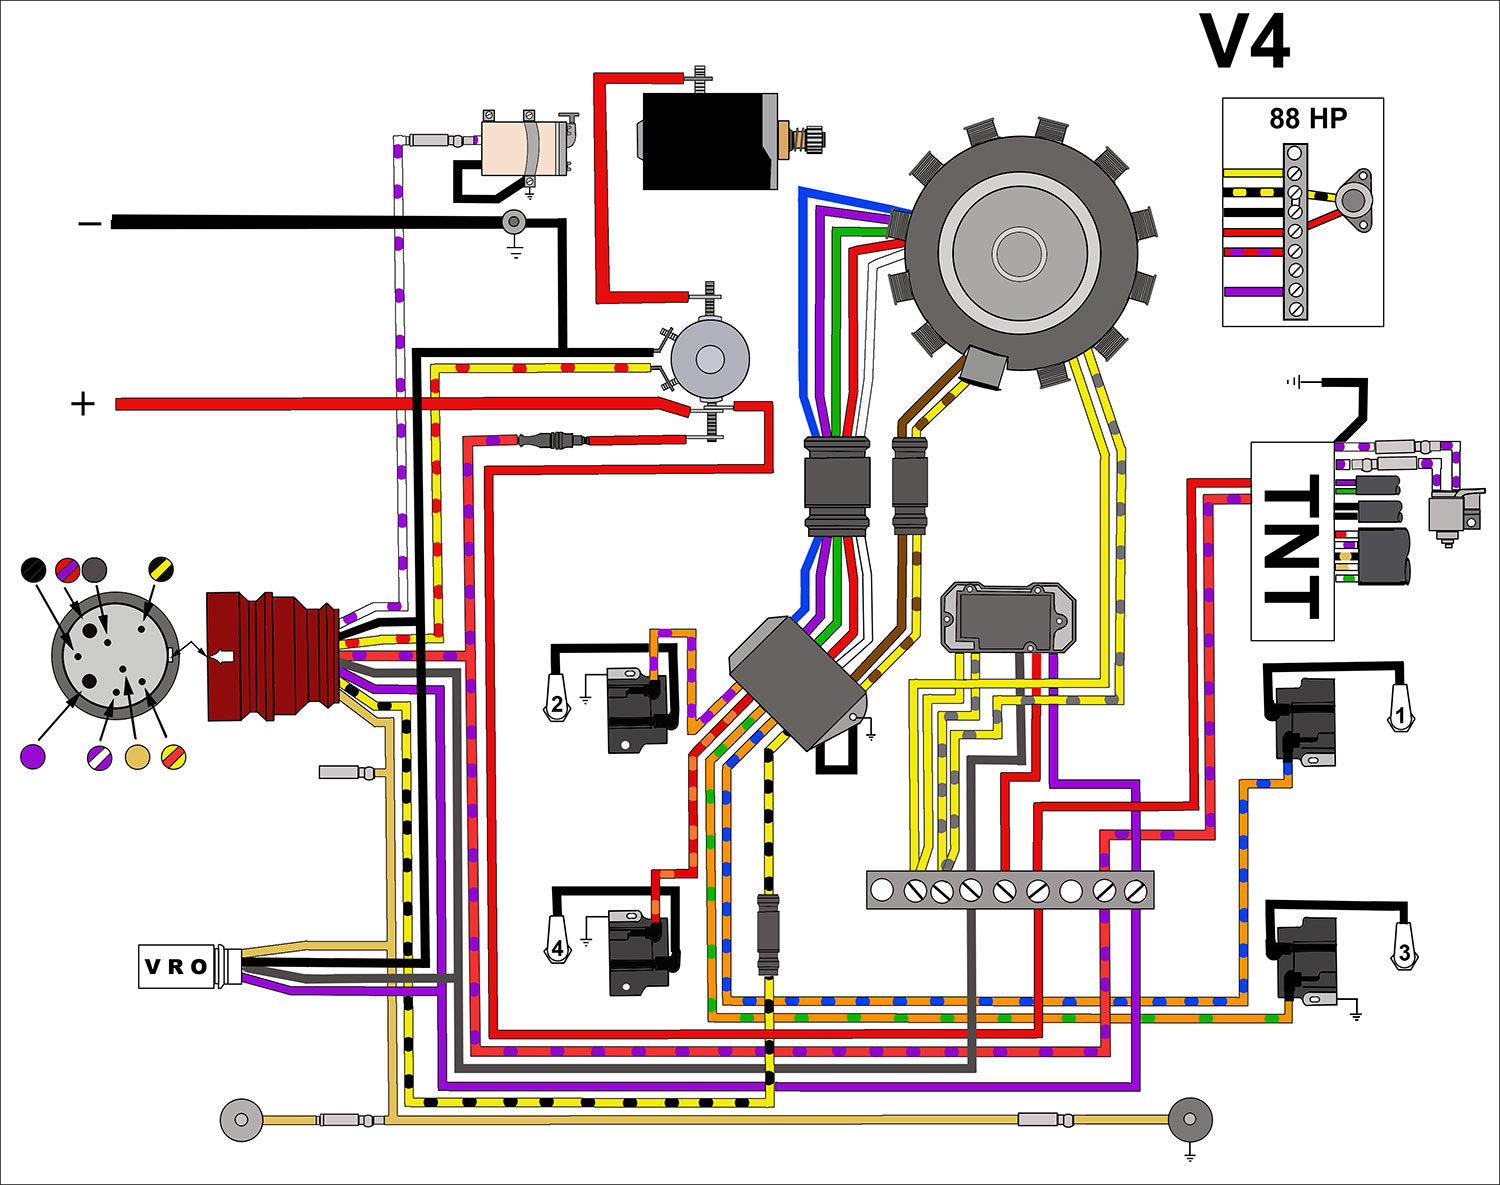 Wiring Diagram For Omc Outboard Motor - Search Wiring Diagrams on